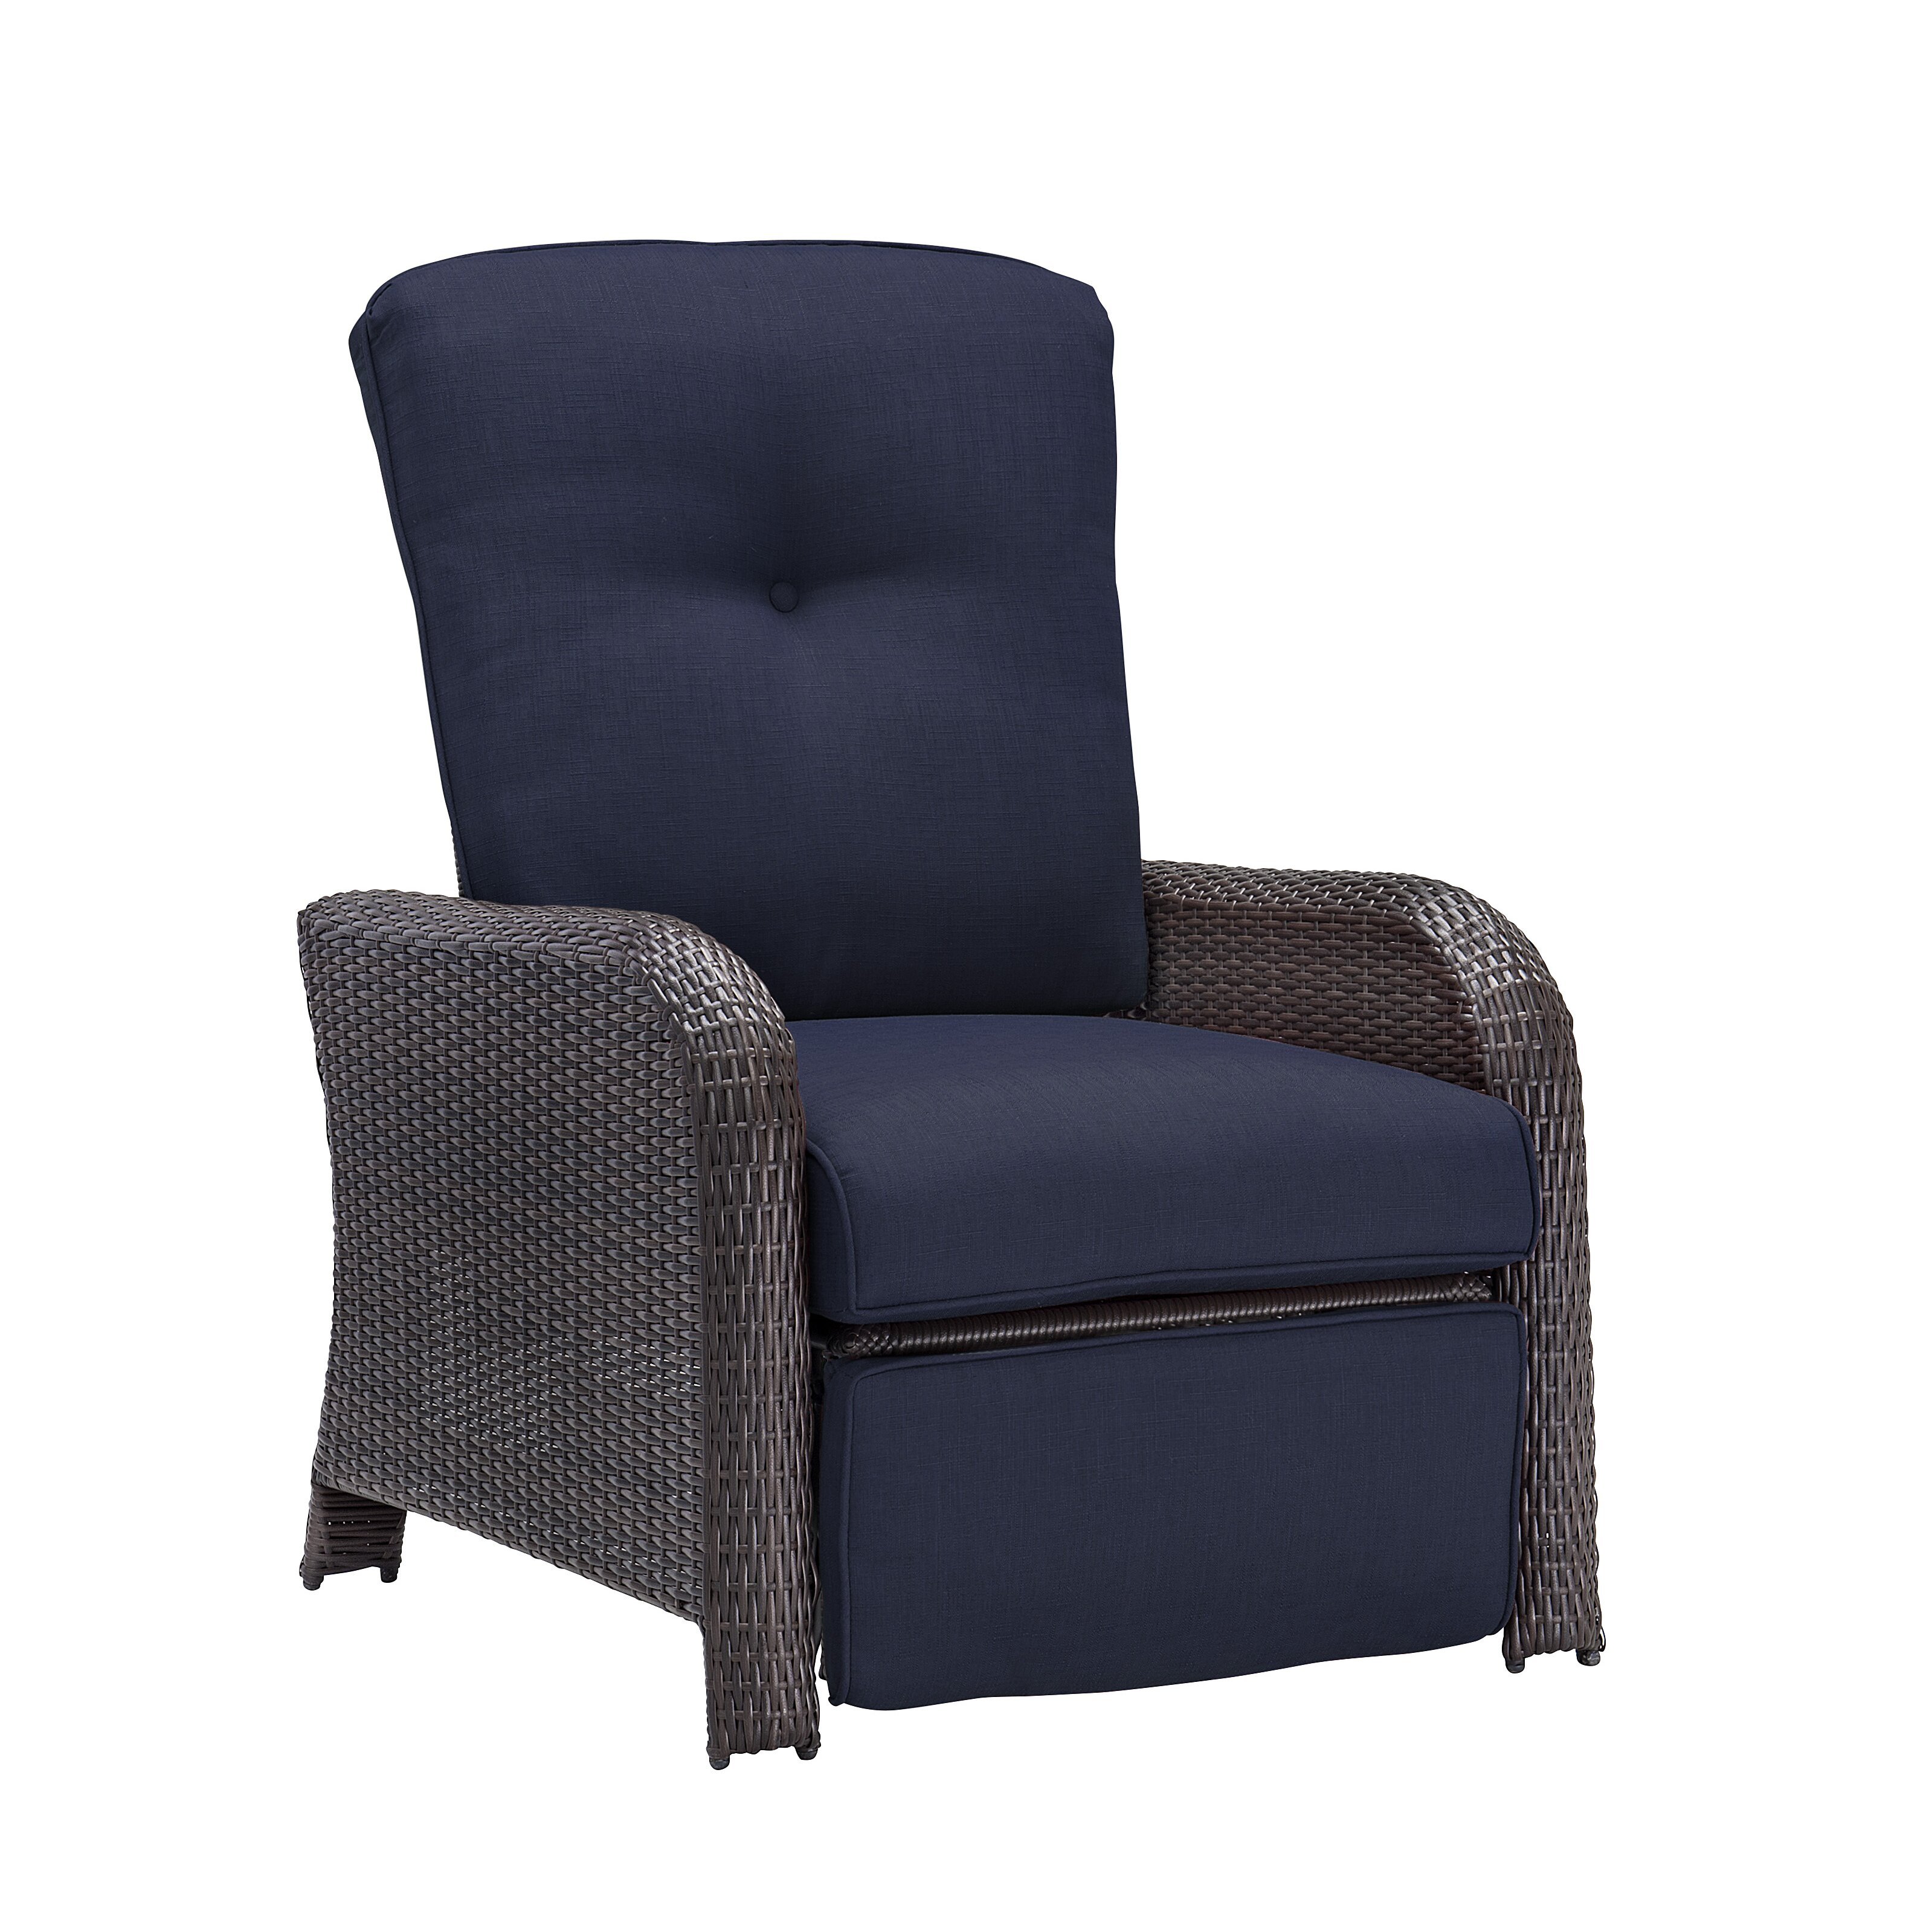 Corolla Luxury Recliner Chair With Cushion Wayfair